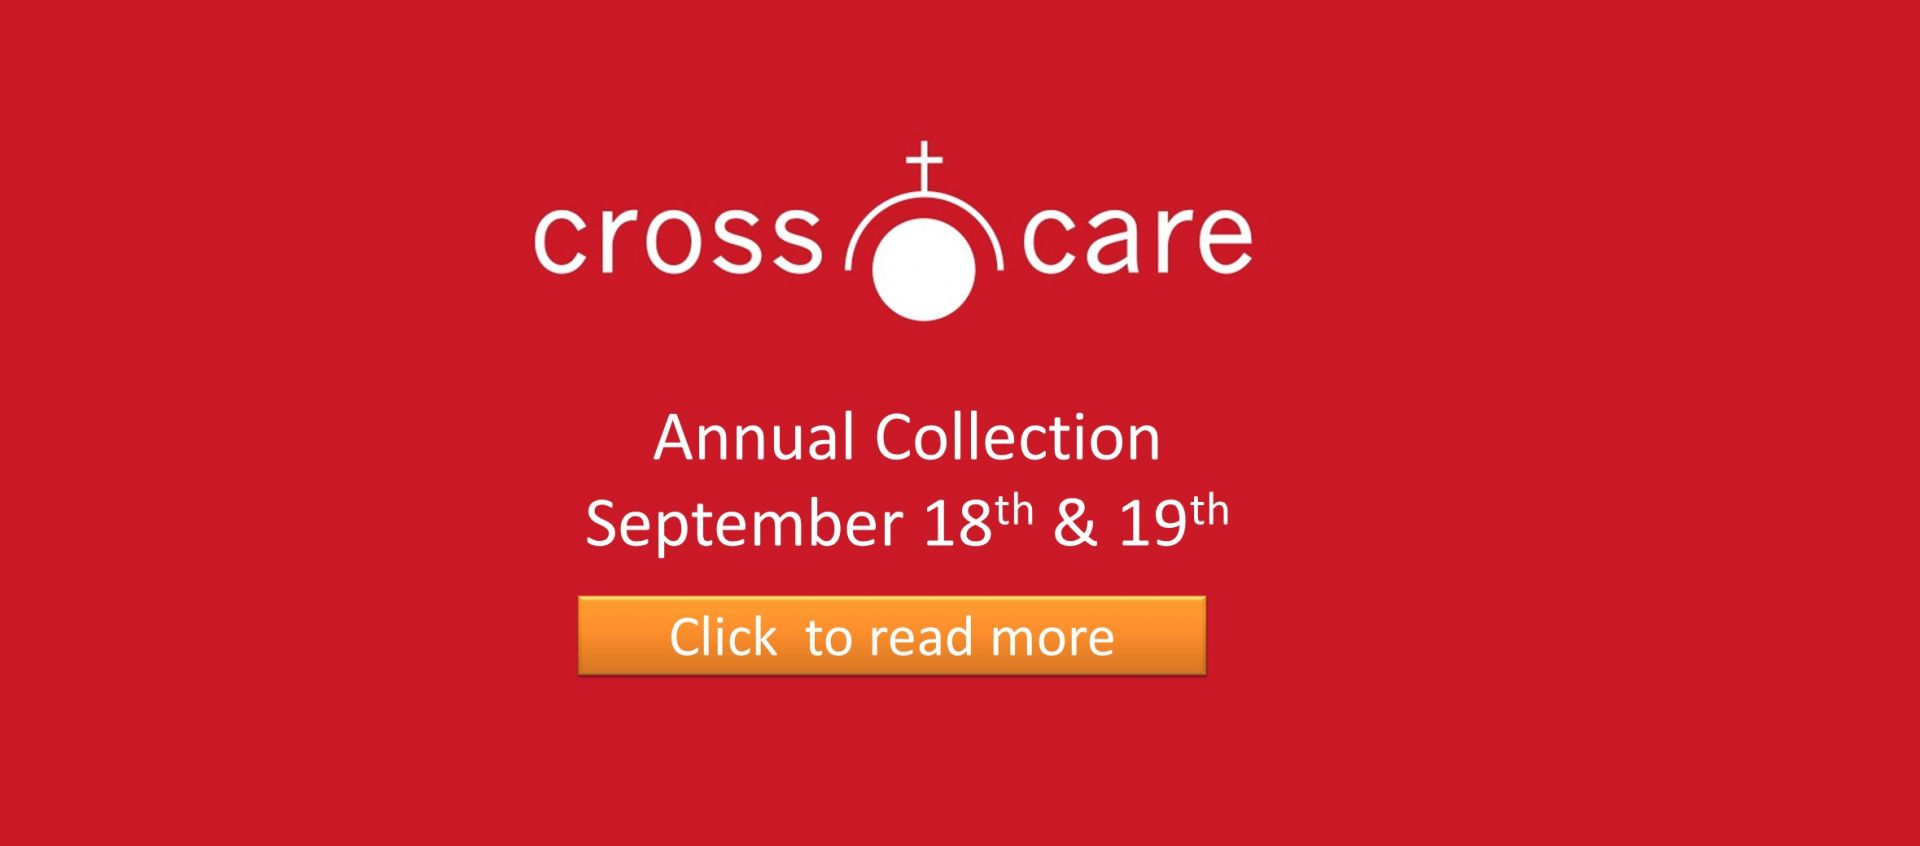 CROSSCARE Annual Collection